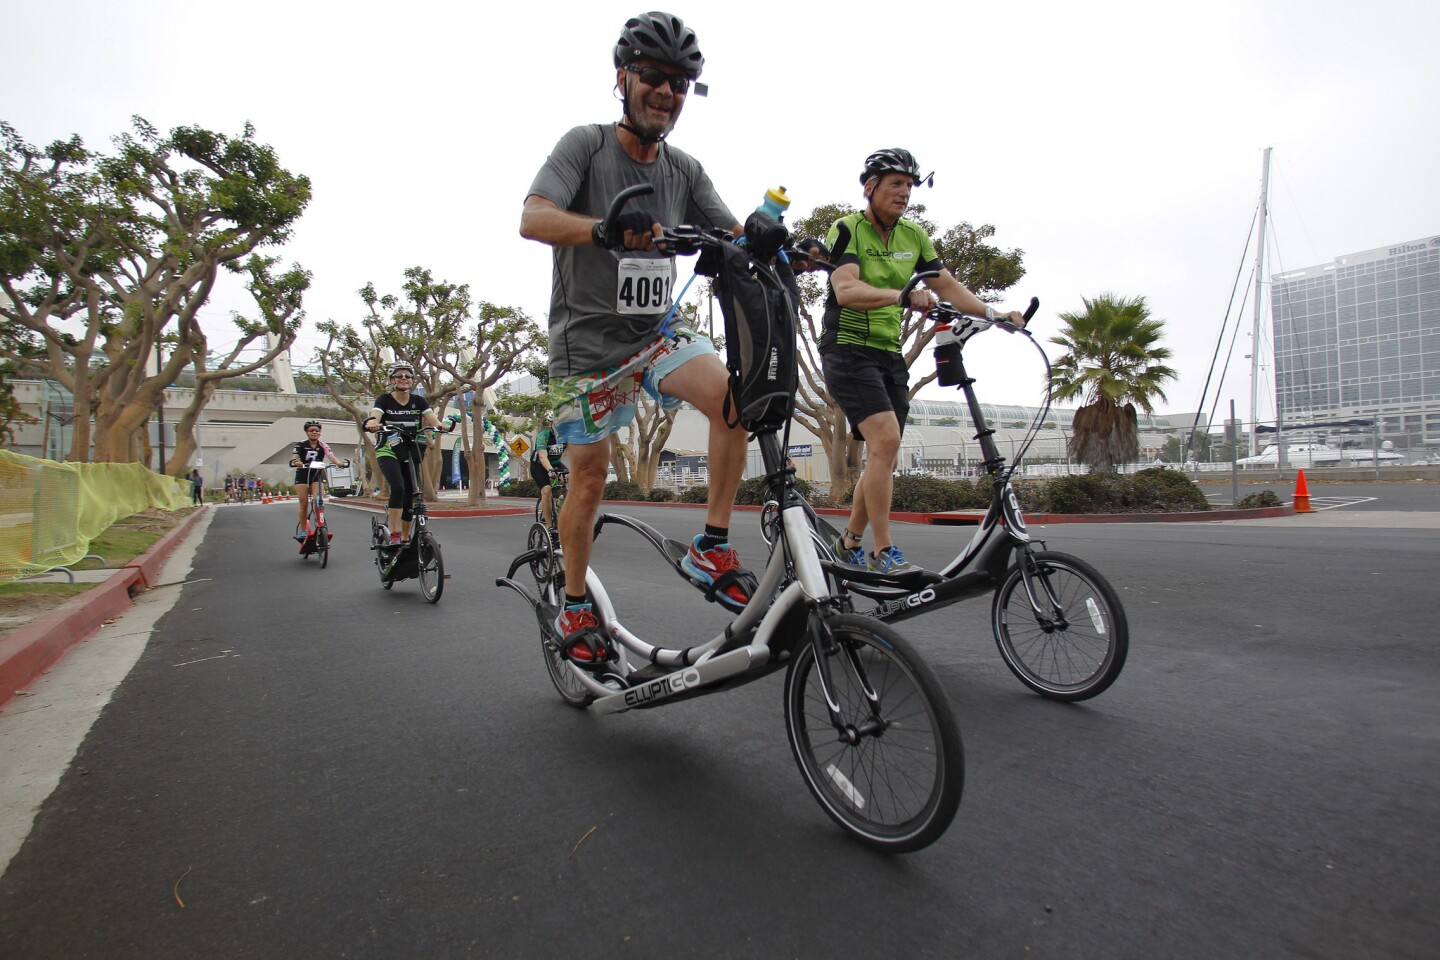 Several riders on Elliptigos cross the finish line for the Bike the Bay on Sunday.